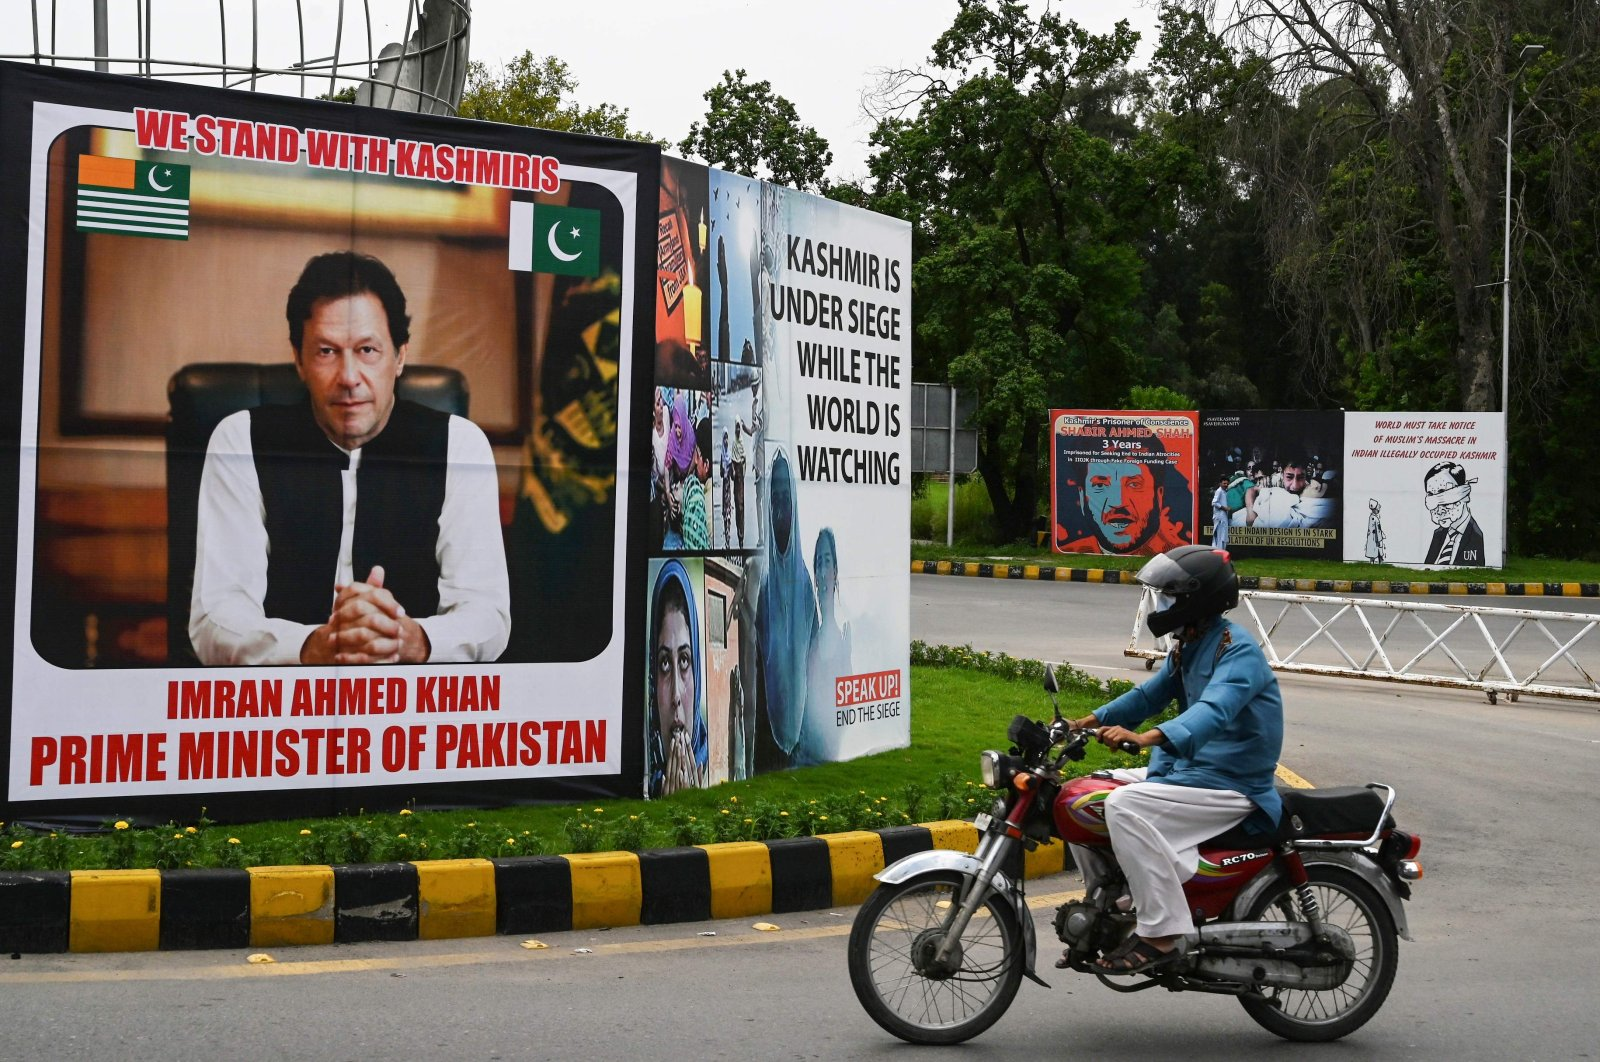 A motorcyclist rides past a billboard displaying a picture of Pakistan's Prime Minister Imran Khan along a street in Islamabad, Aug. 4, 2020. (AFP Photo)